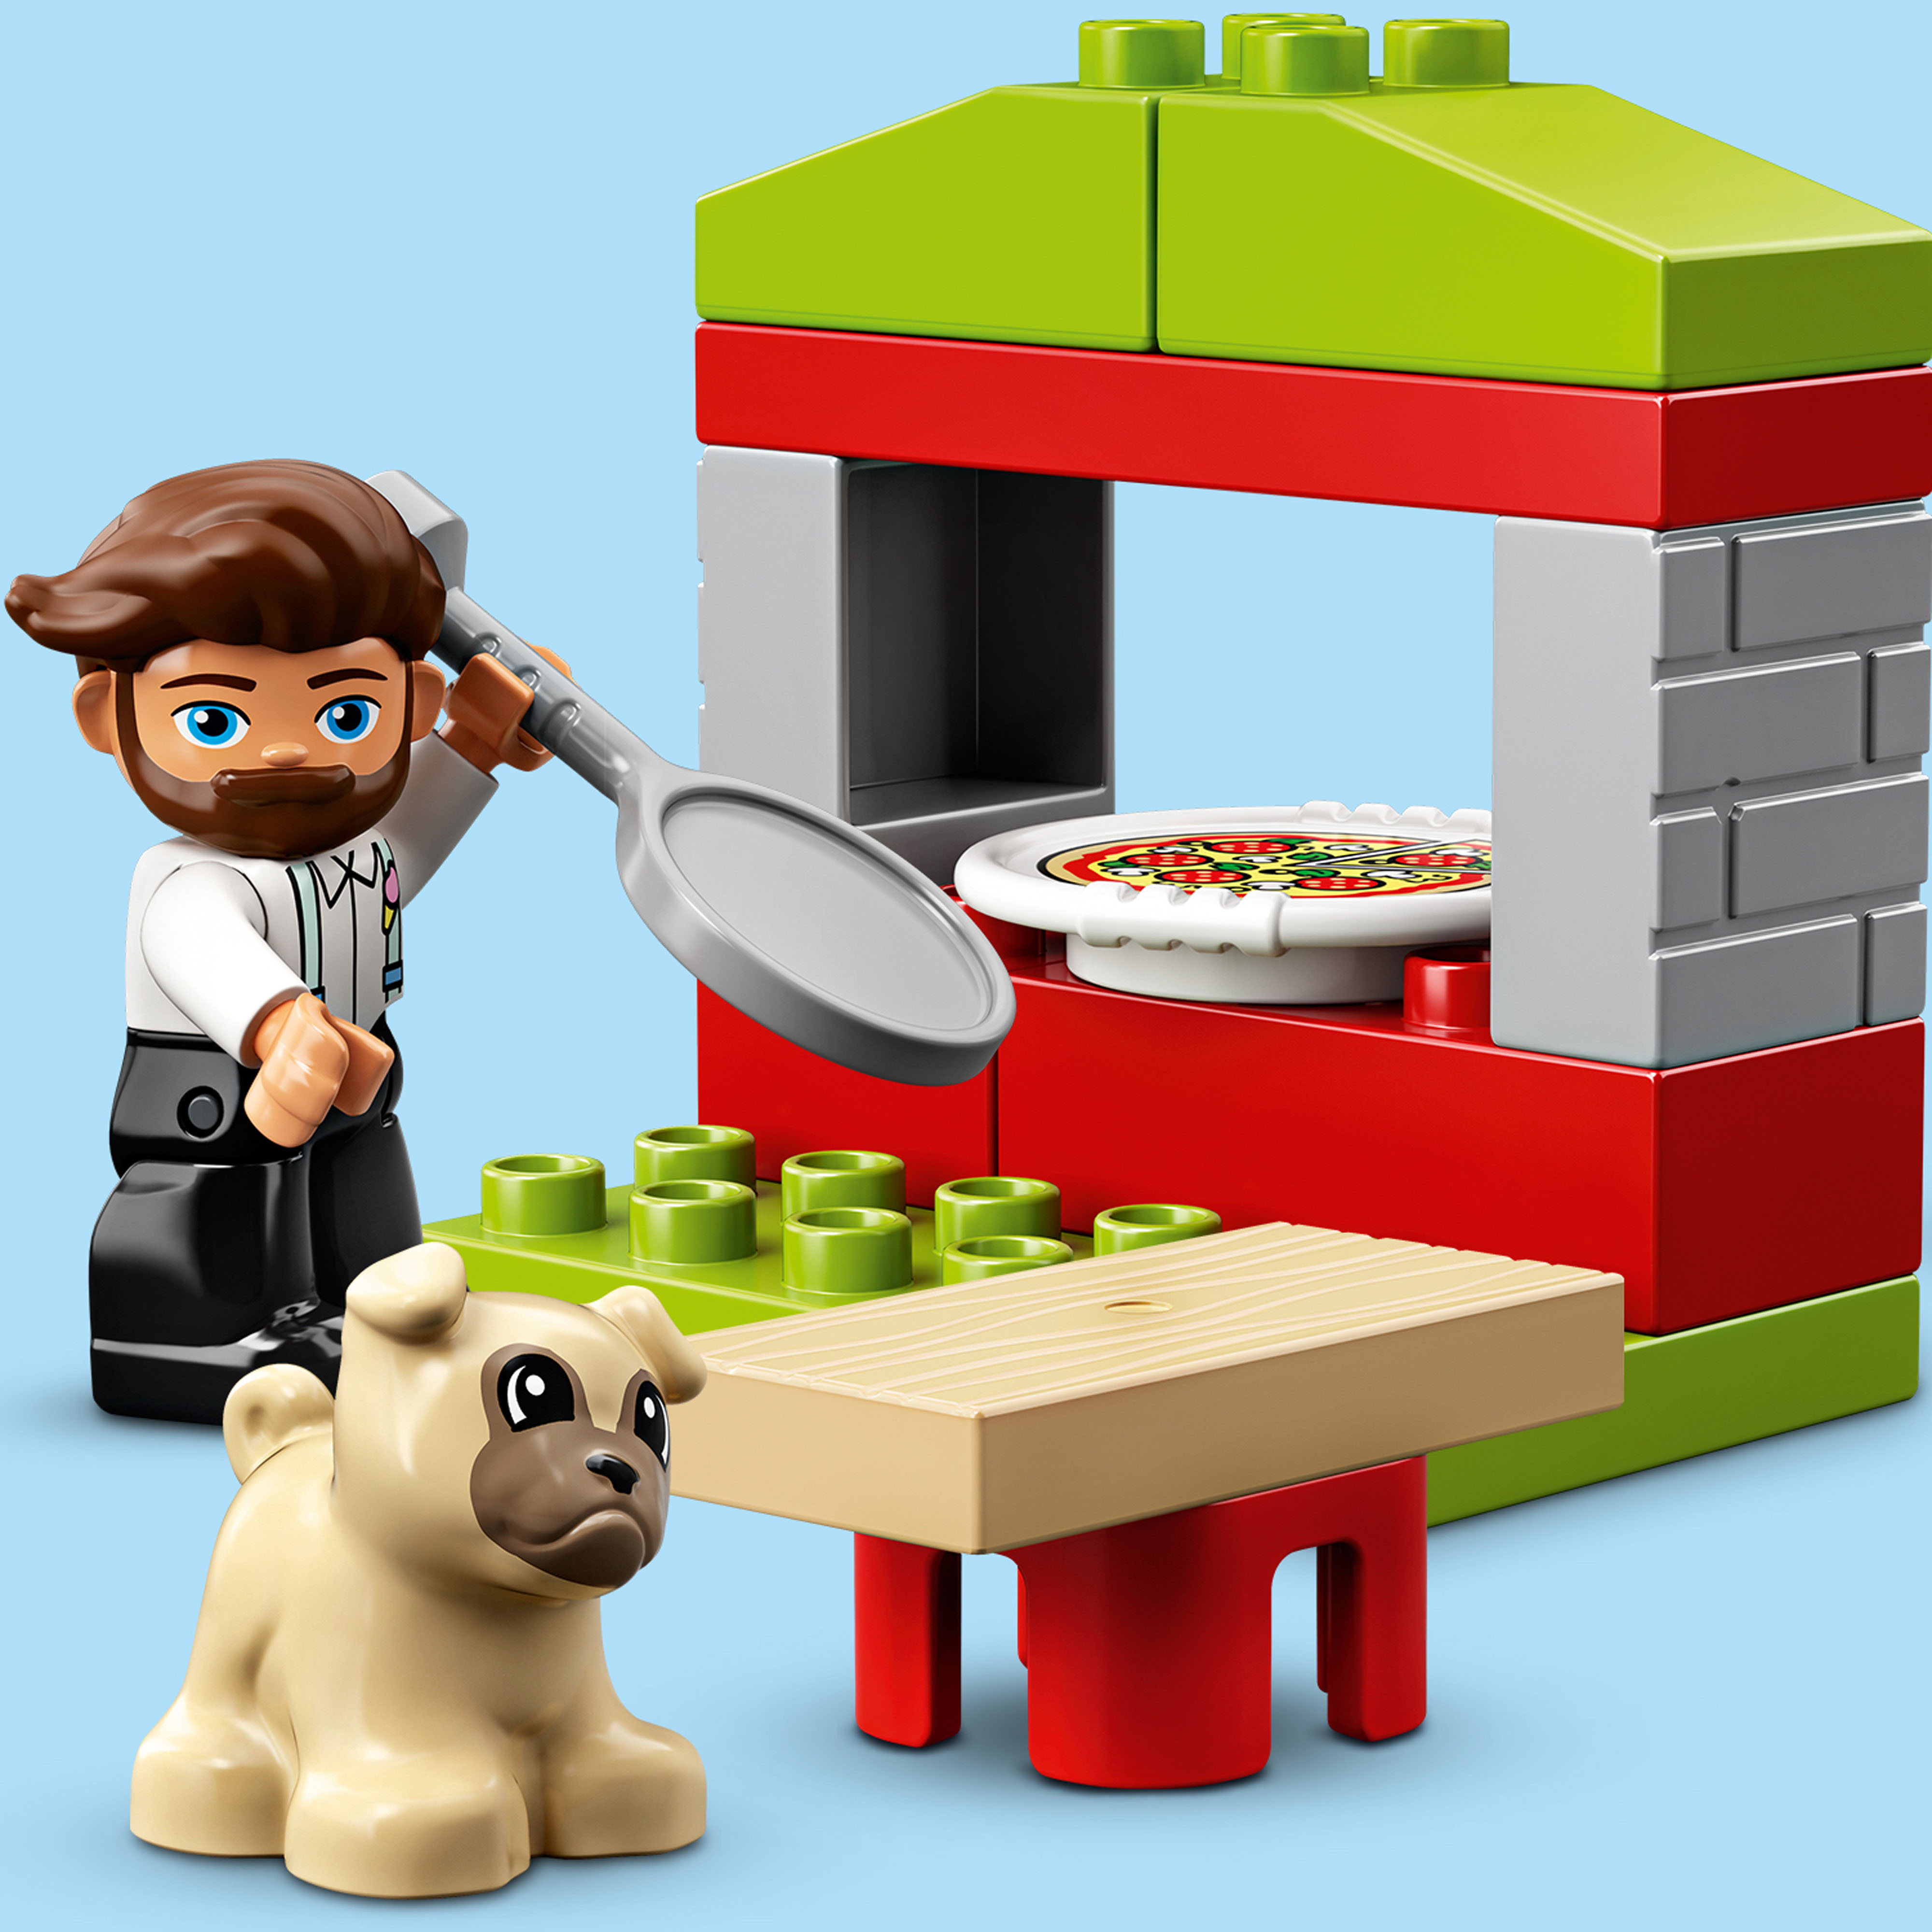 10927 LEGO DUPLO Town Pizza Stand 18 Pieces Age 2 Years+